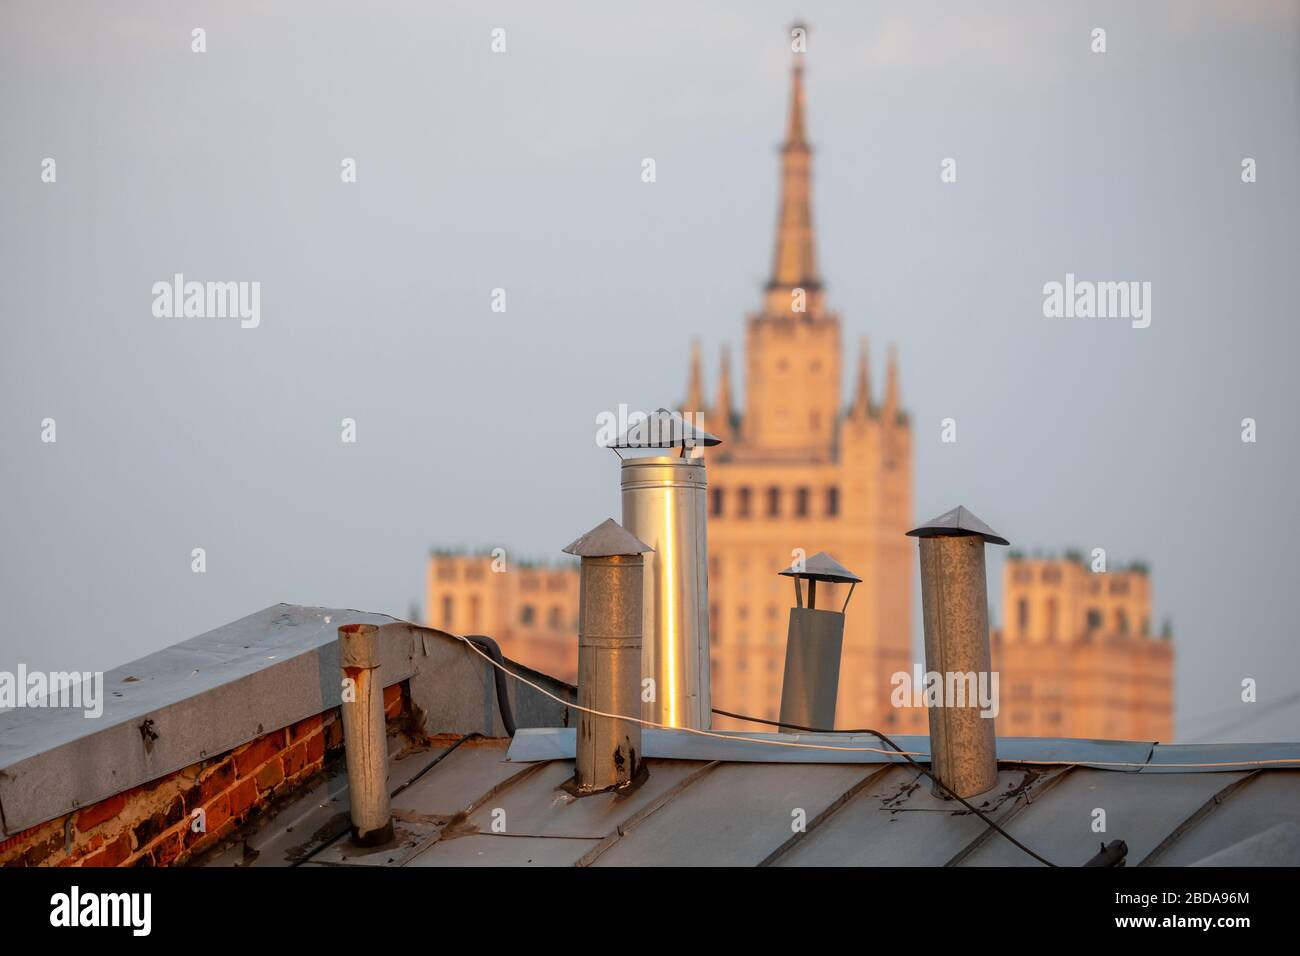 MOSCOW, RUSSIA - APRIL 8, 2020: A view of the Kudrinskaya Square Building. Marina Lystseva/TASS Stock Photo